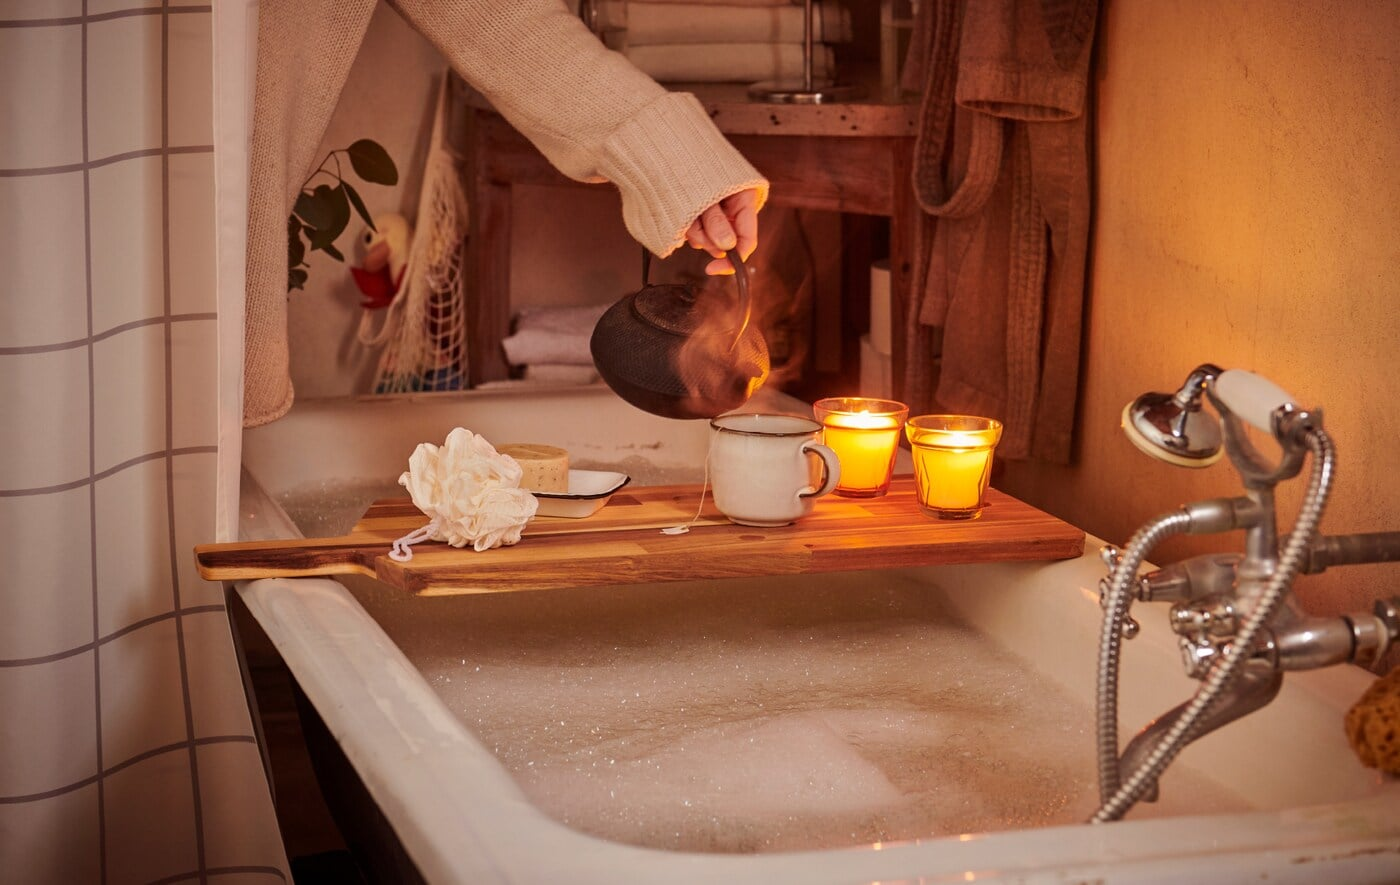 A woman in a sweater preparing for a spa day pours tea into a mug on a cutting board balanced across a bathtub.